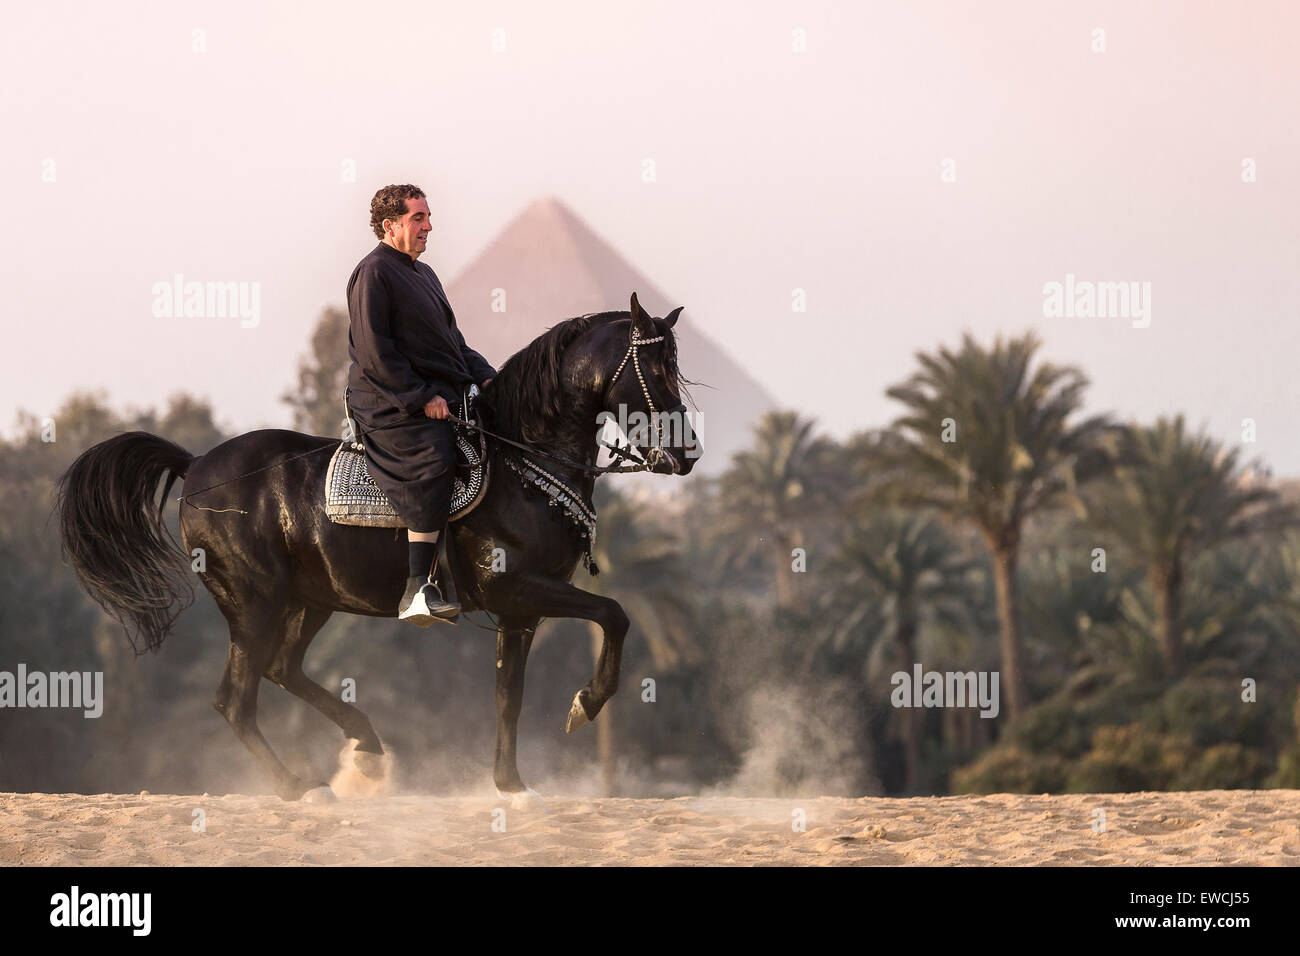 Arabian Horse. Man on bay stallion performing a Piaffe in front of the Pyramids of Giza in the desert. Egypt - Stock Image